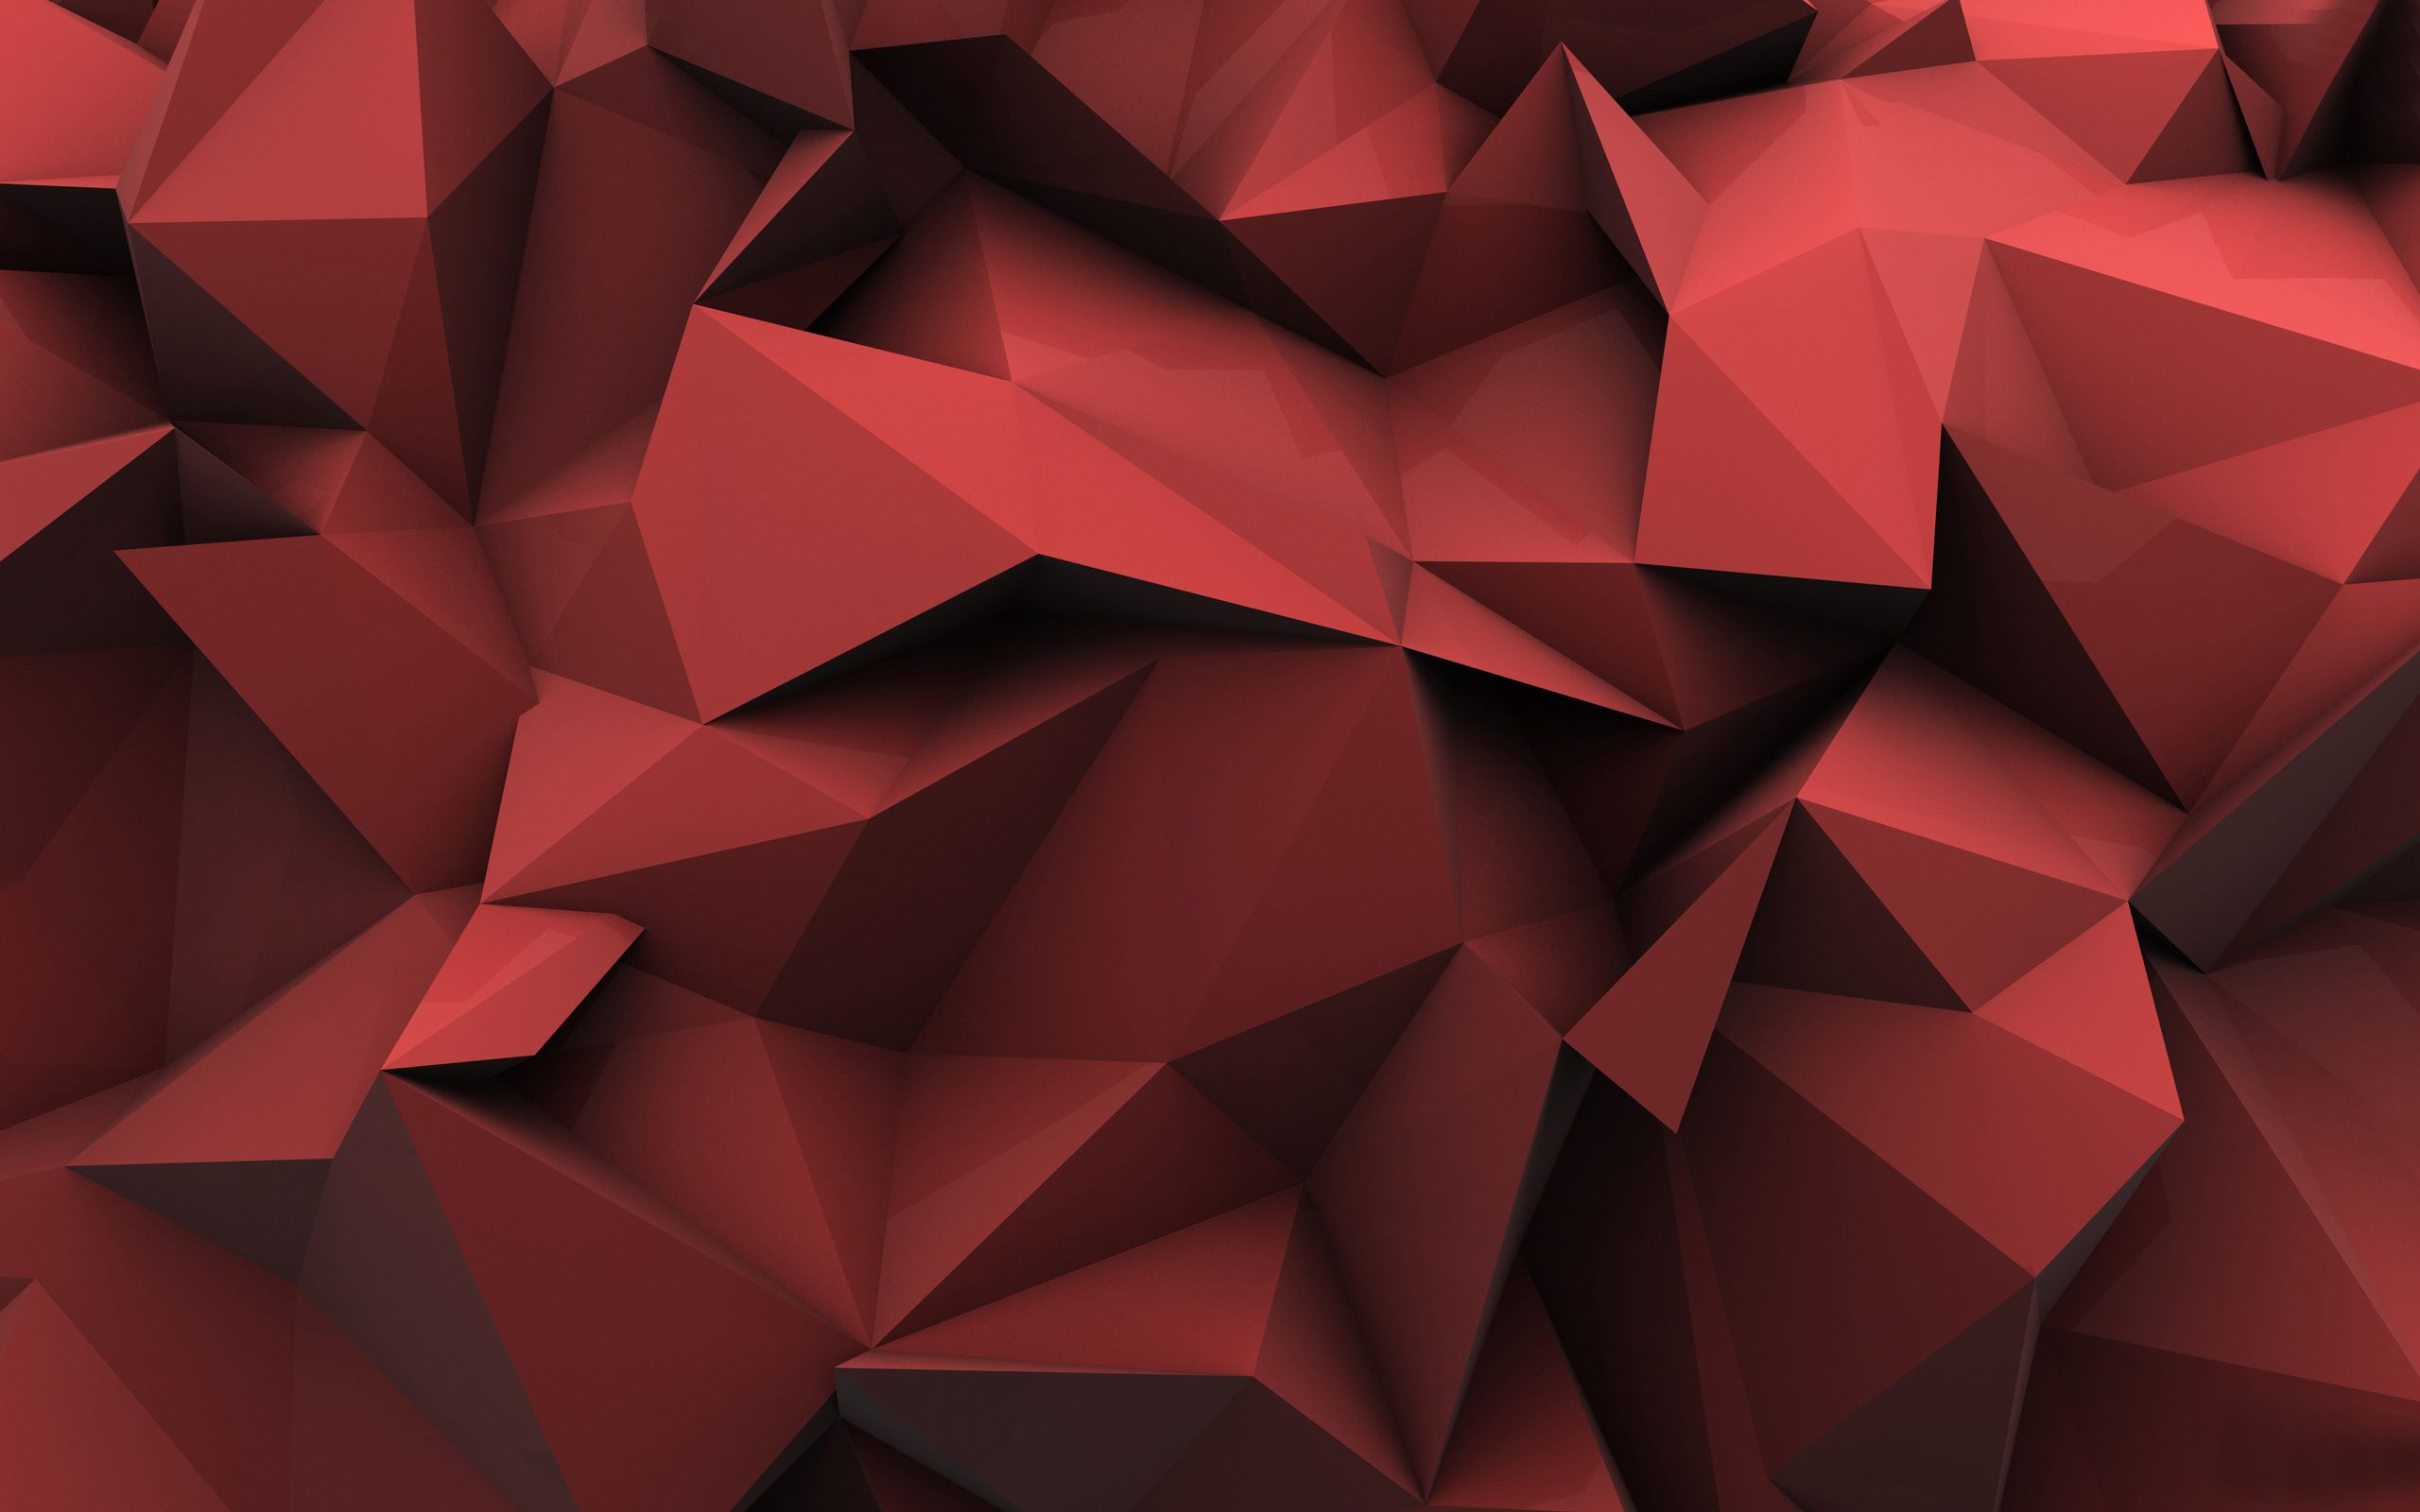 Red Abstract Hd Wallpaper Abstract Art Design Wallpaper